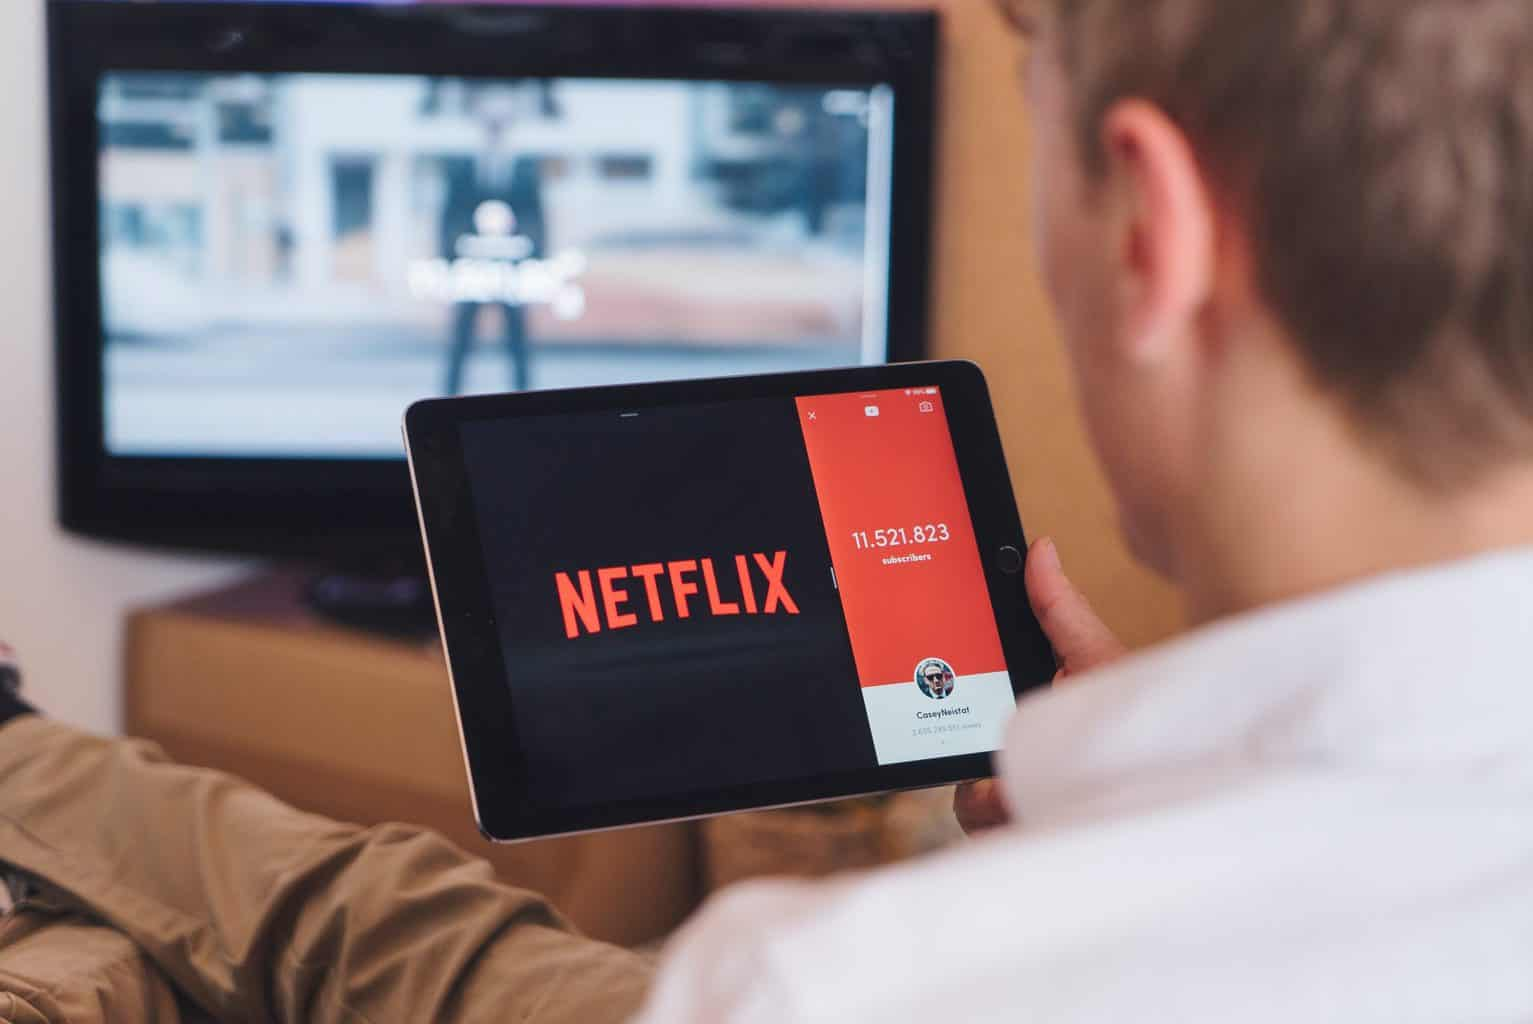 How to limit data usage on Netflix